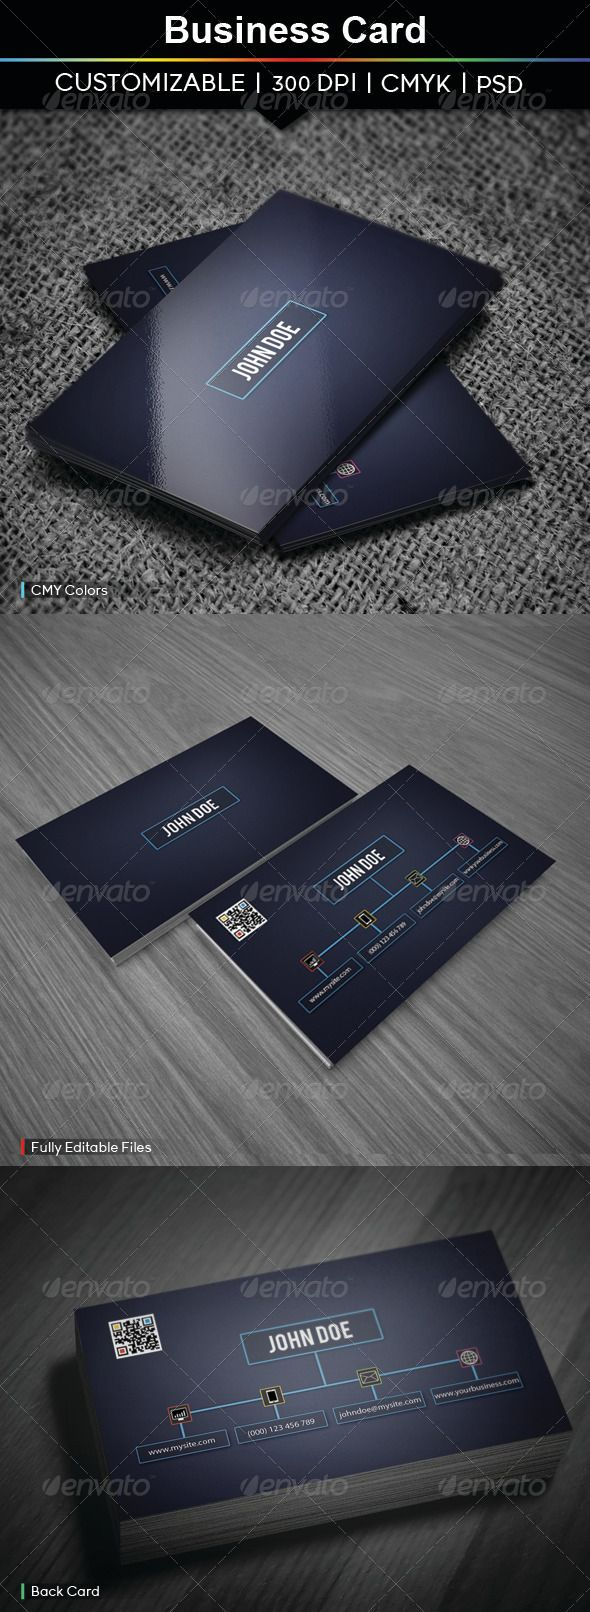 #Business #Card - #Creative Business Cards Download here: https://graphicriver.net/item/business-card/3887485?ref=alena994